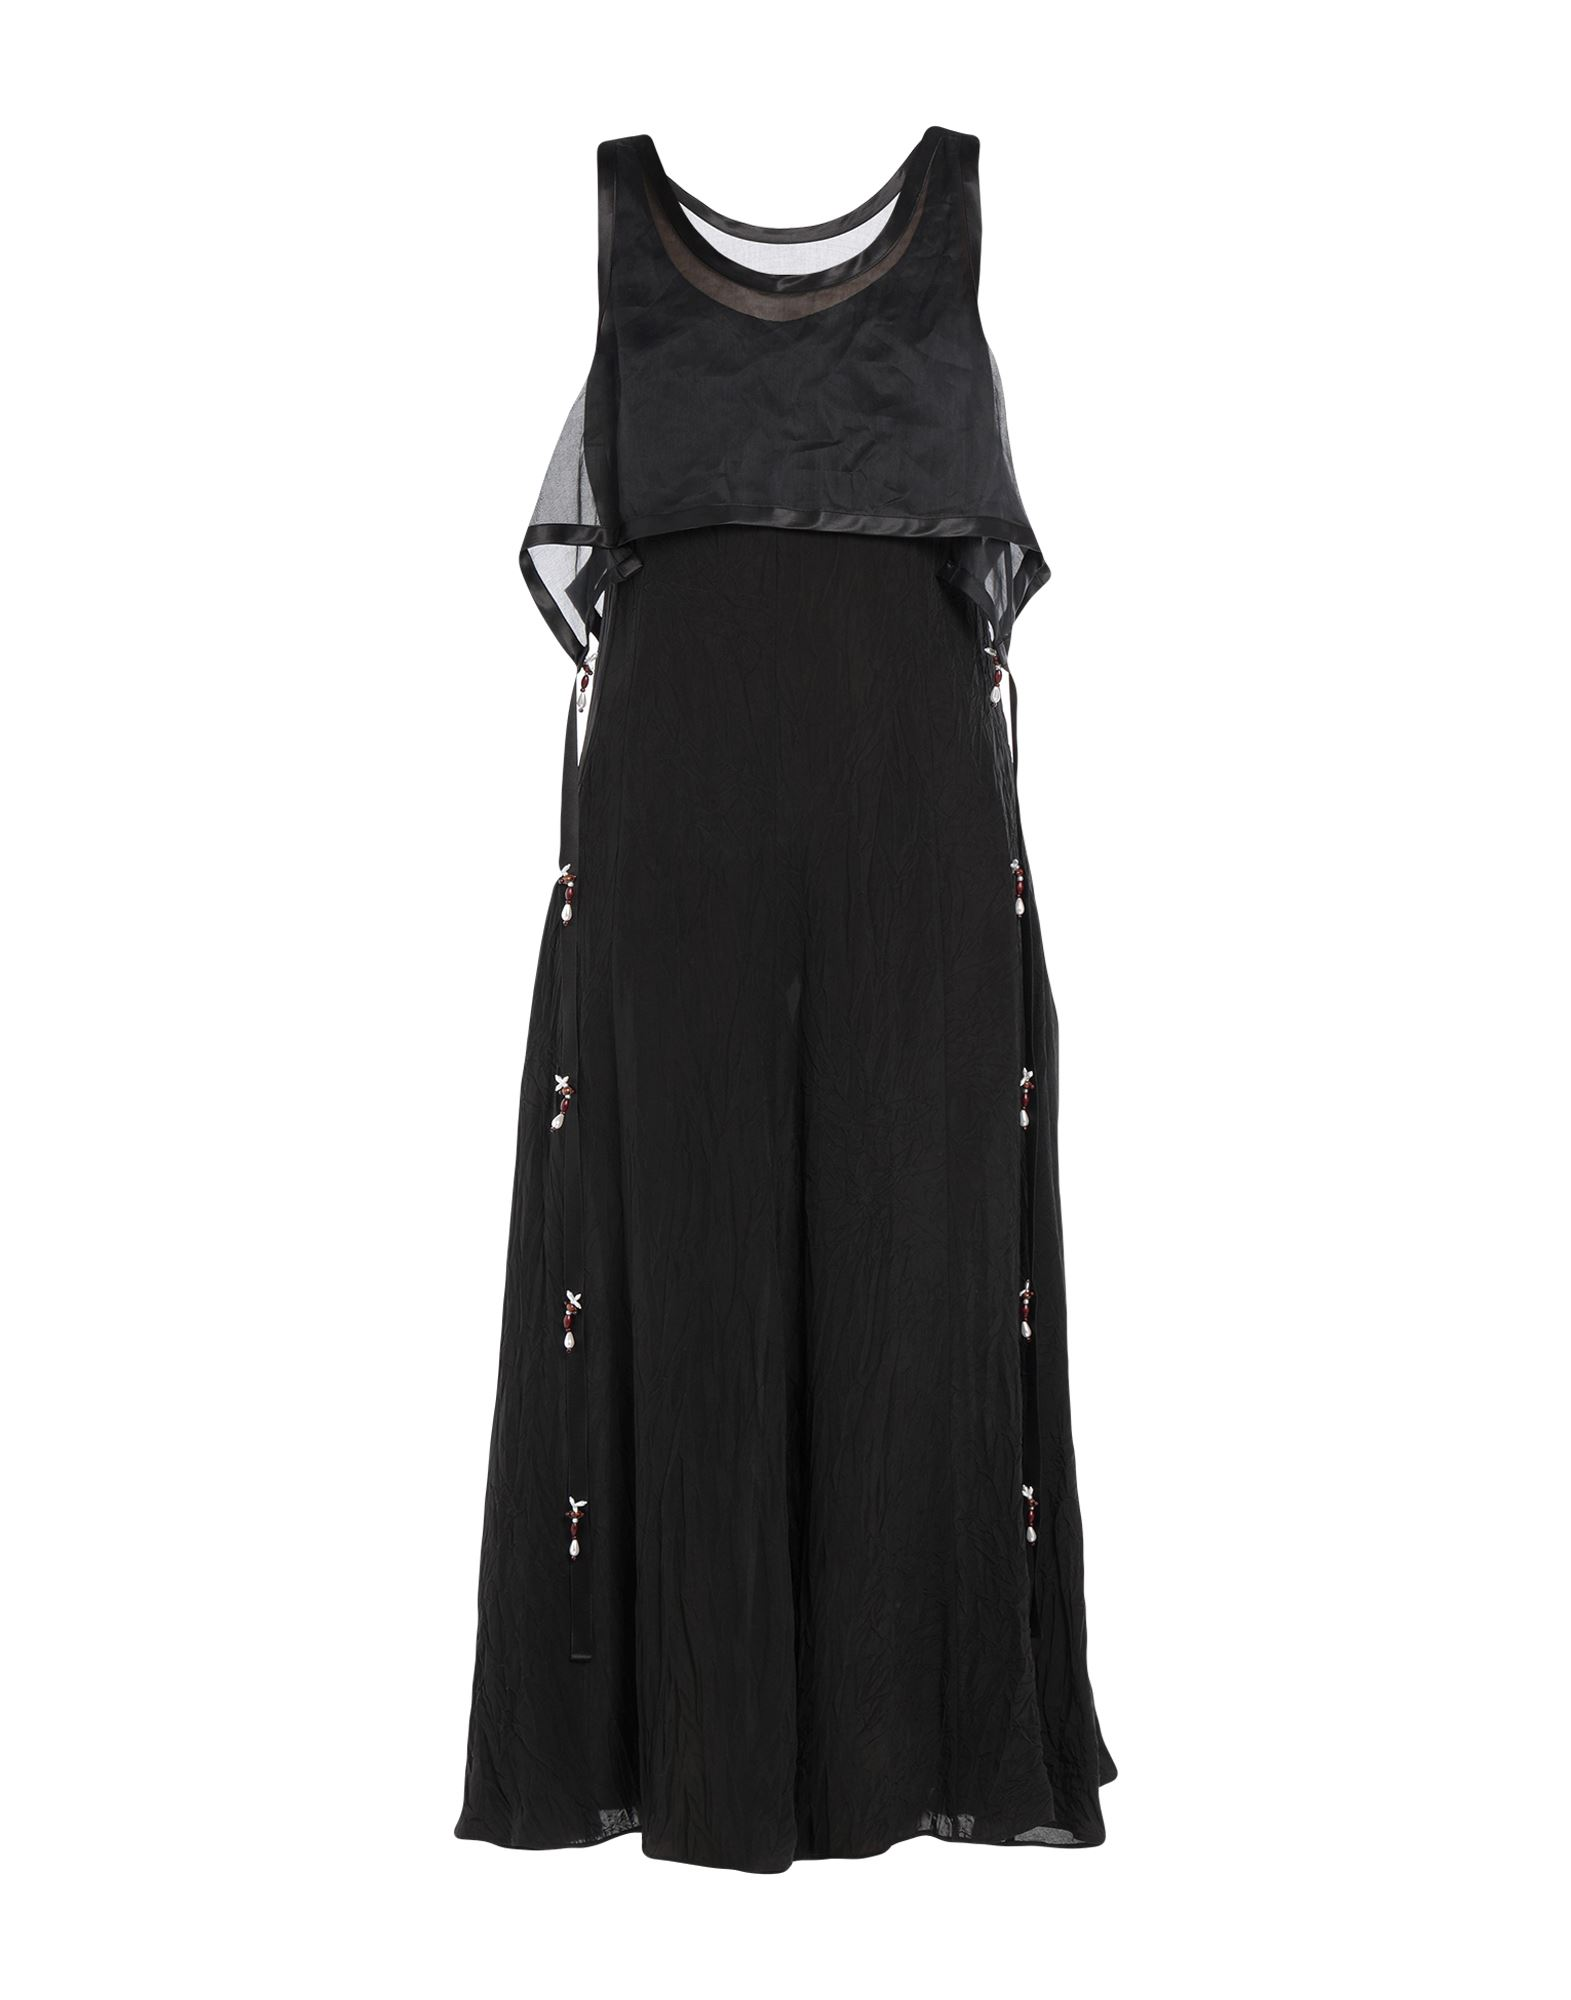 LOEWE Long dresses. organza, plain weave, beads, solid color, round collar, sleeveless, no pockets, no fastening, unlined. 100% Viscose, Cotton, Polyester